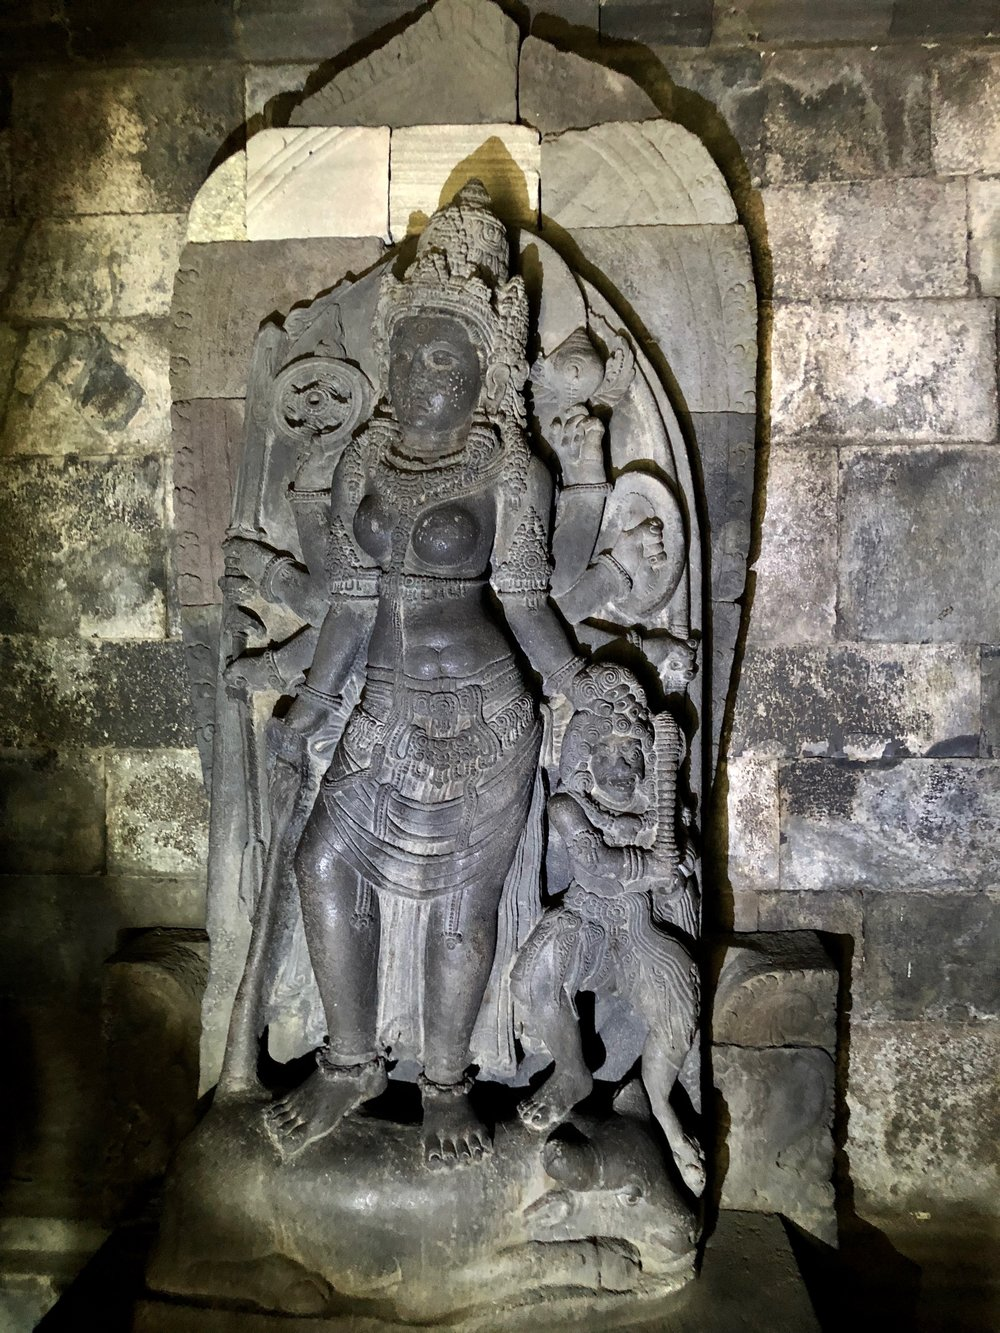 As punishment for her deceit, the princess became the statue of Durga in the Shiva Temple at Prambanan